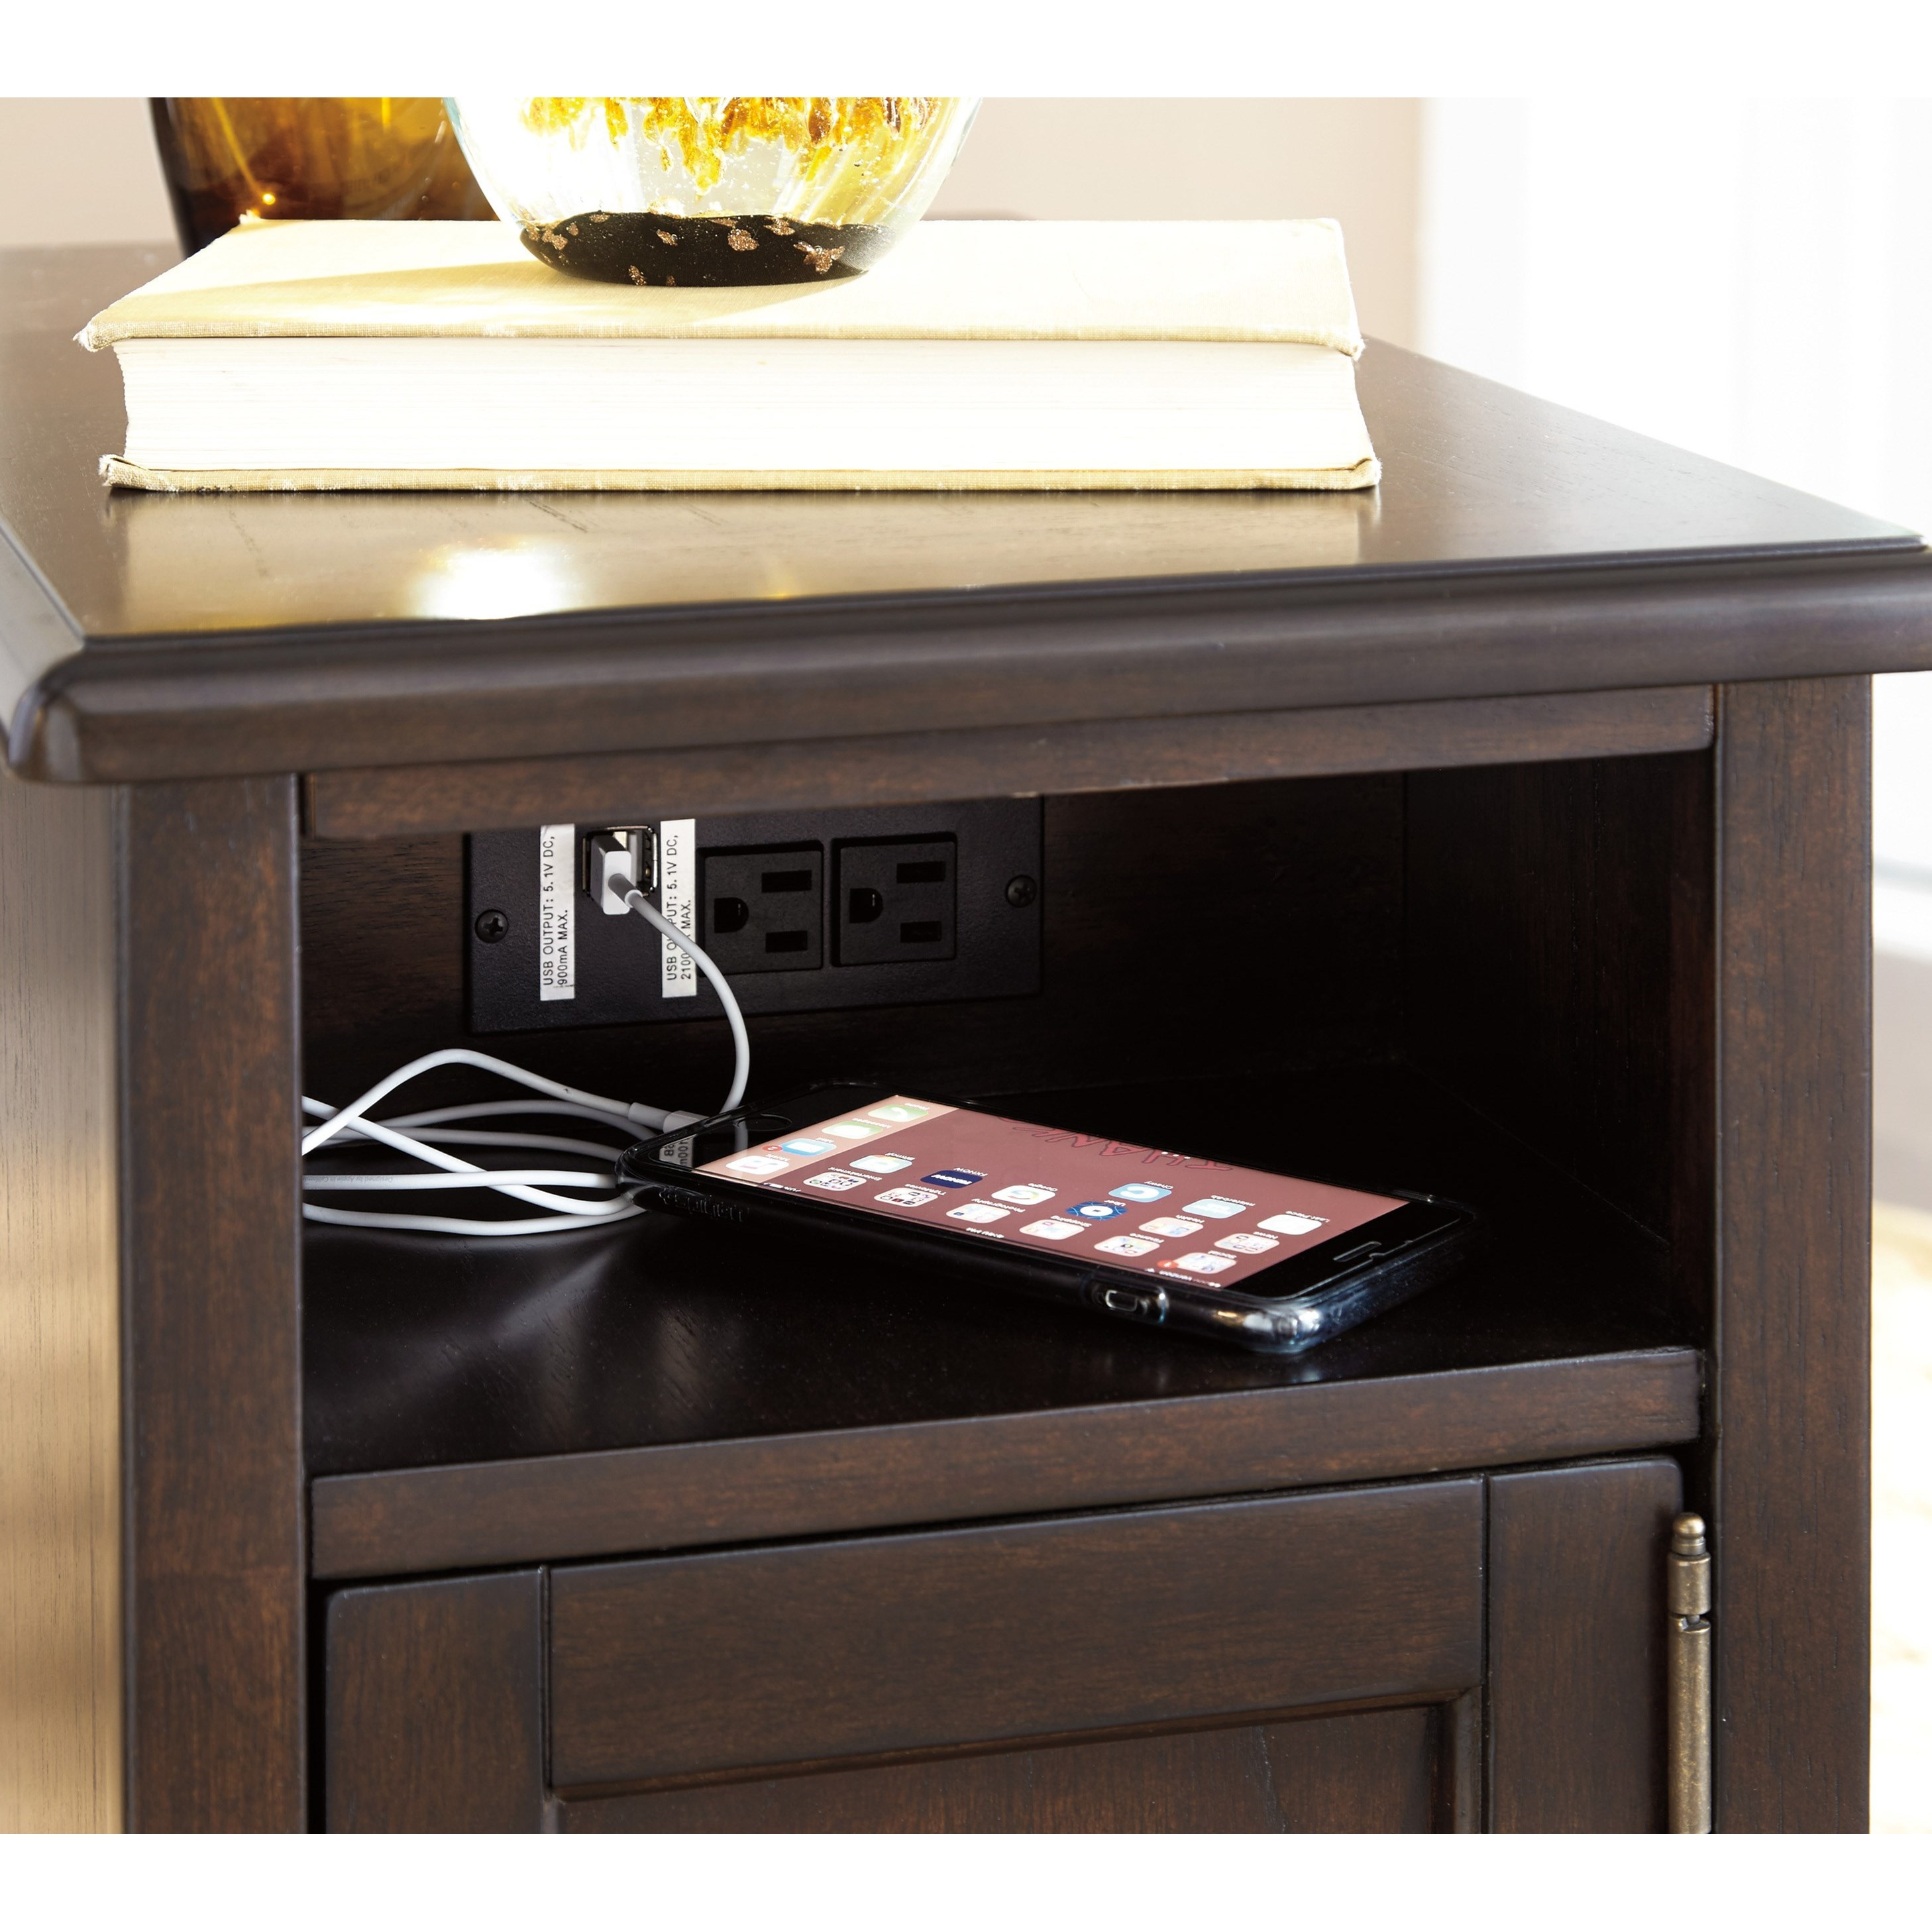 Chair Side End Table With Power Outlets Usb Charging By Signature